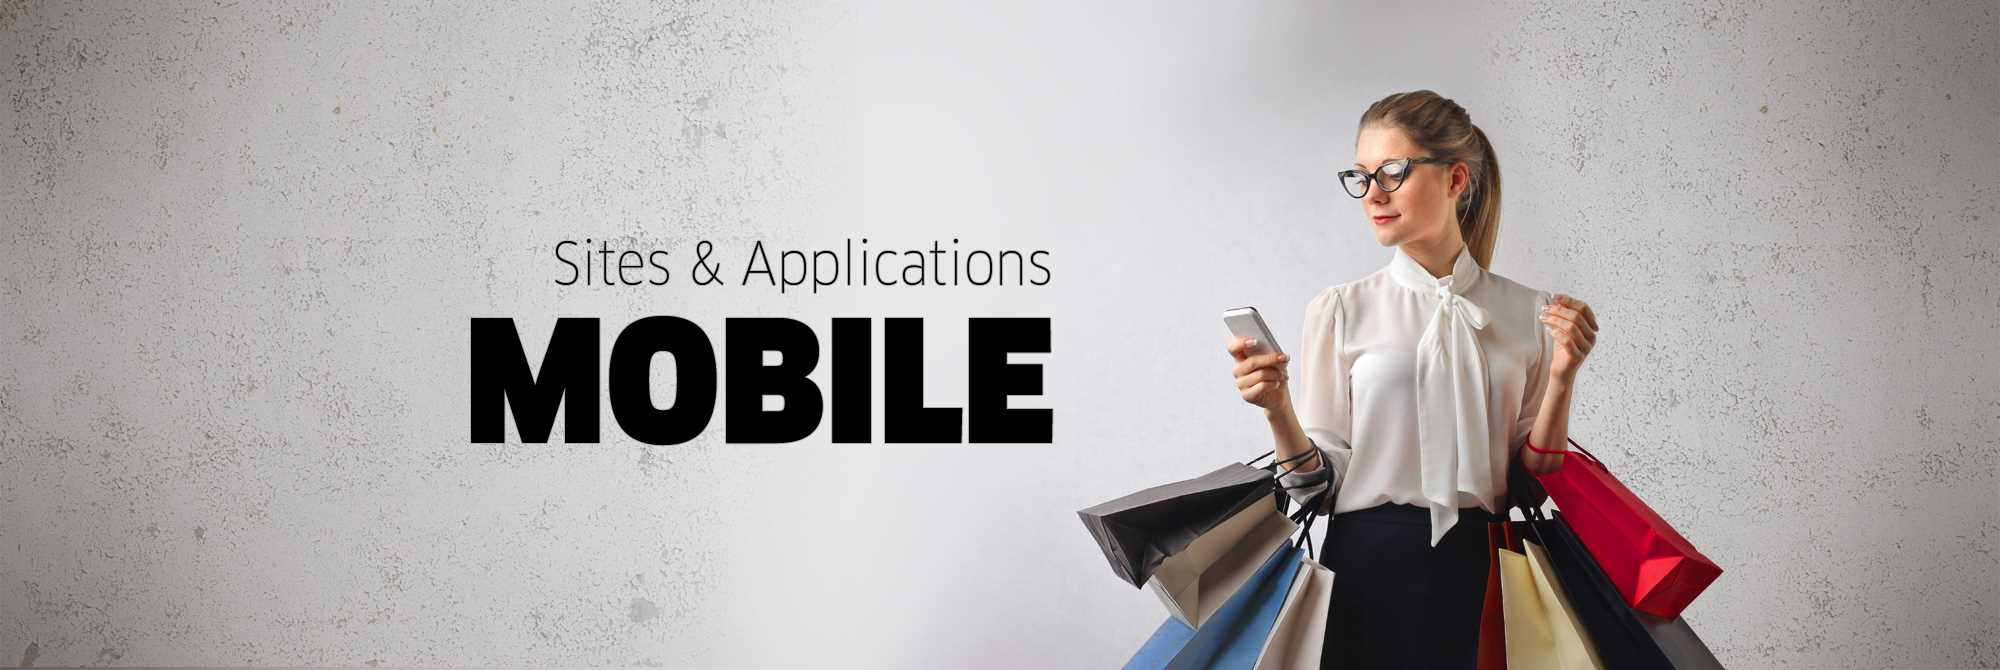 sites et applications mobile